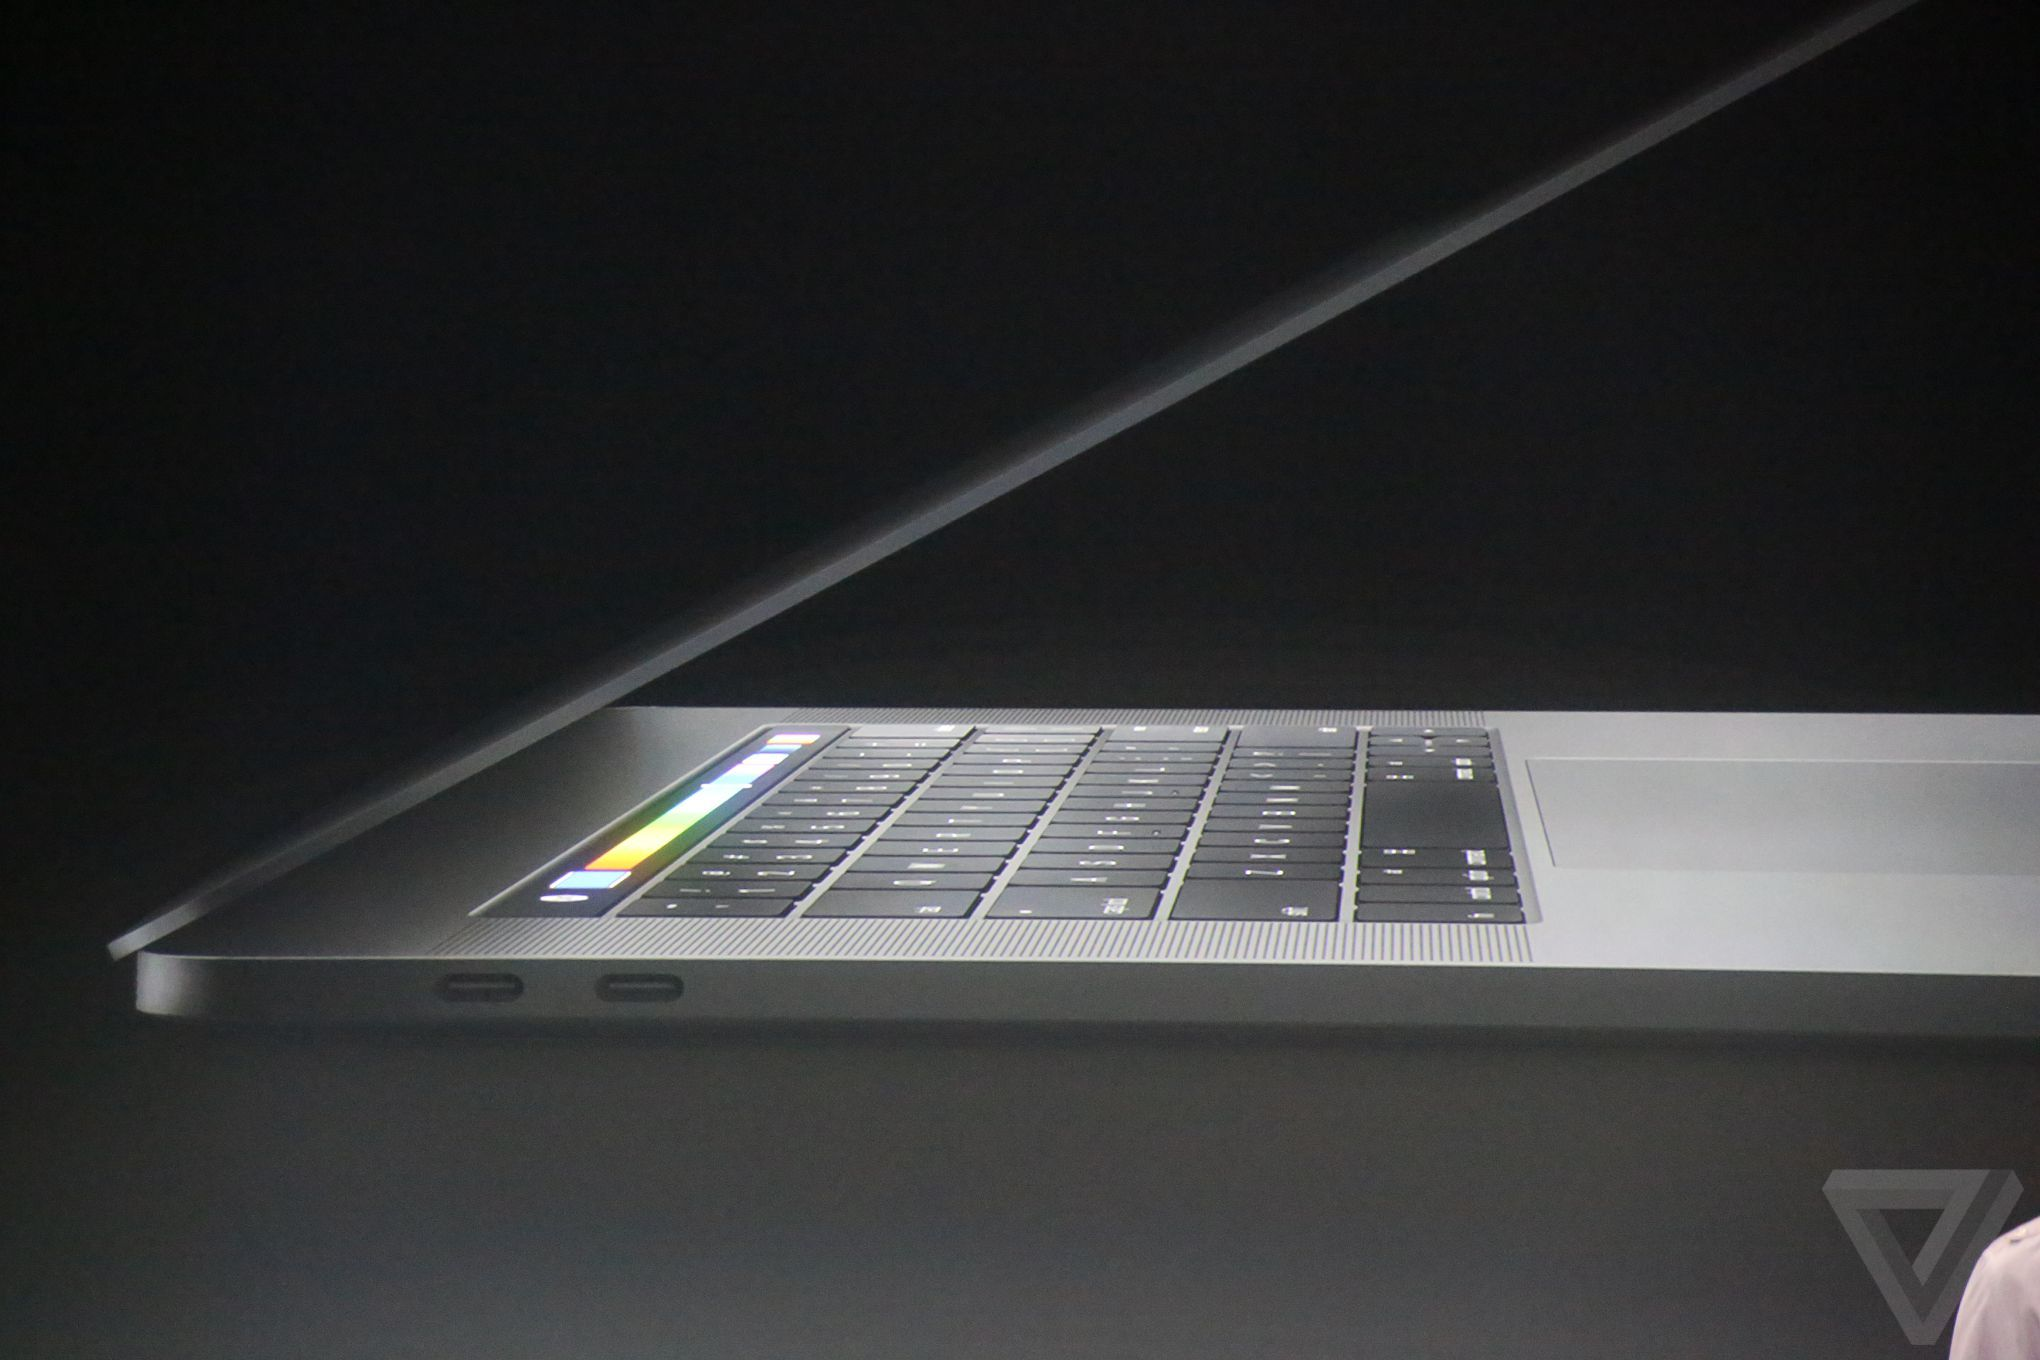 apple-macbook-event-20161027-8865